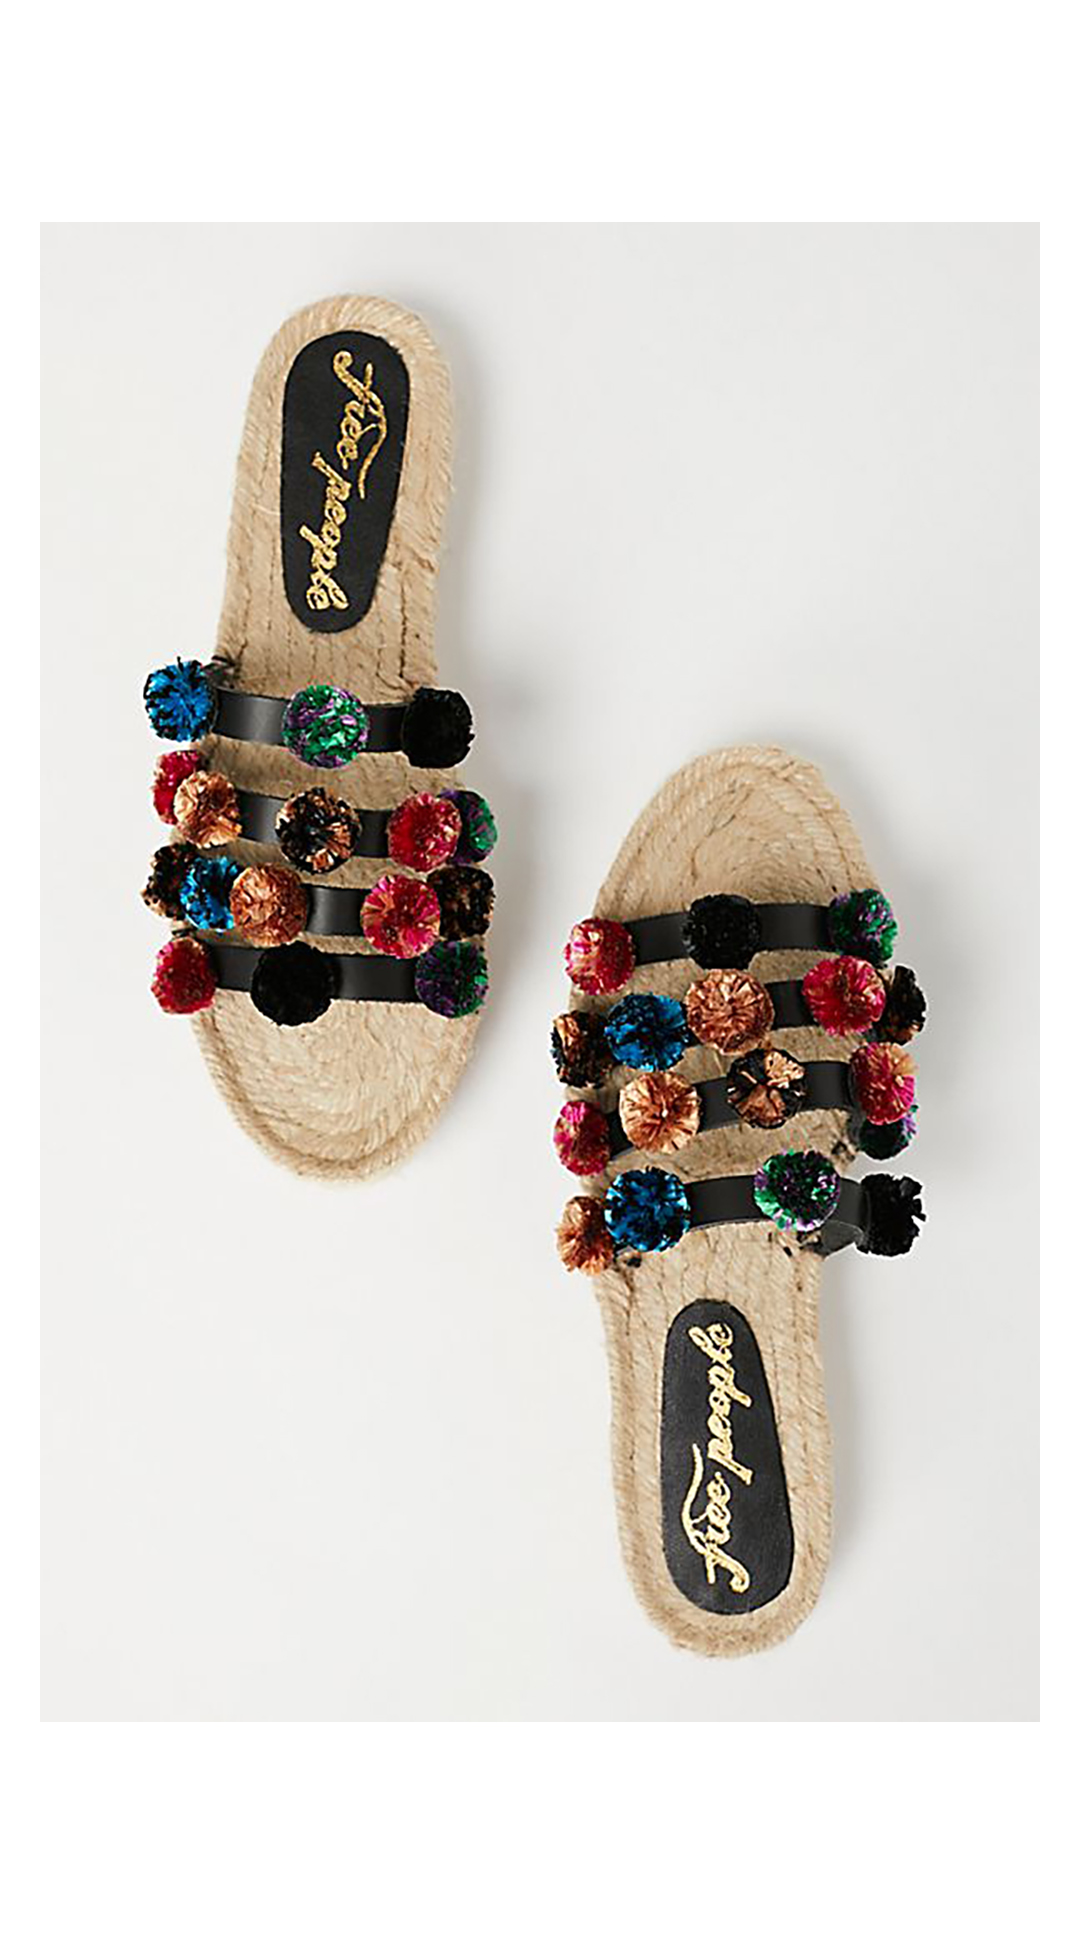 Women's Sandals for Free People's Memorial Day Sales